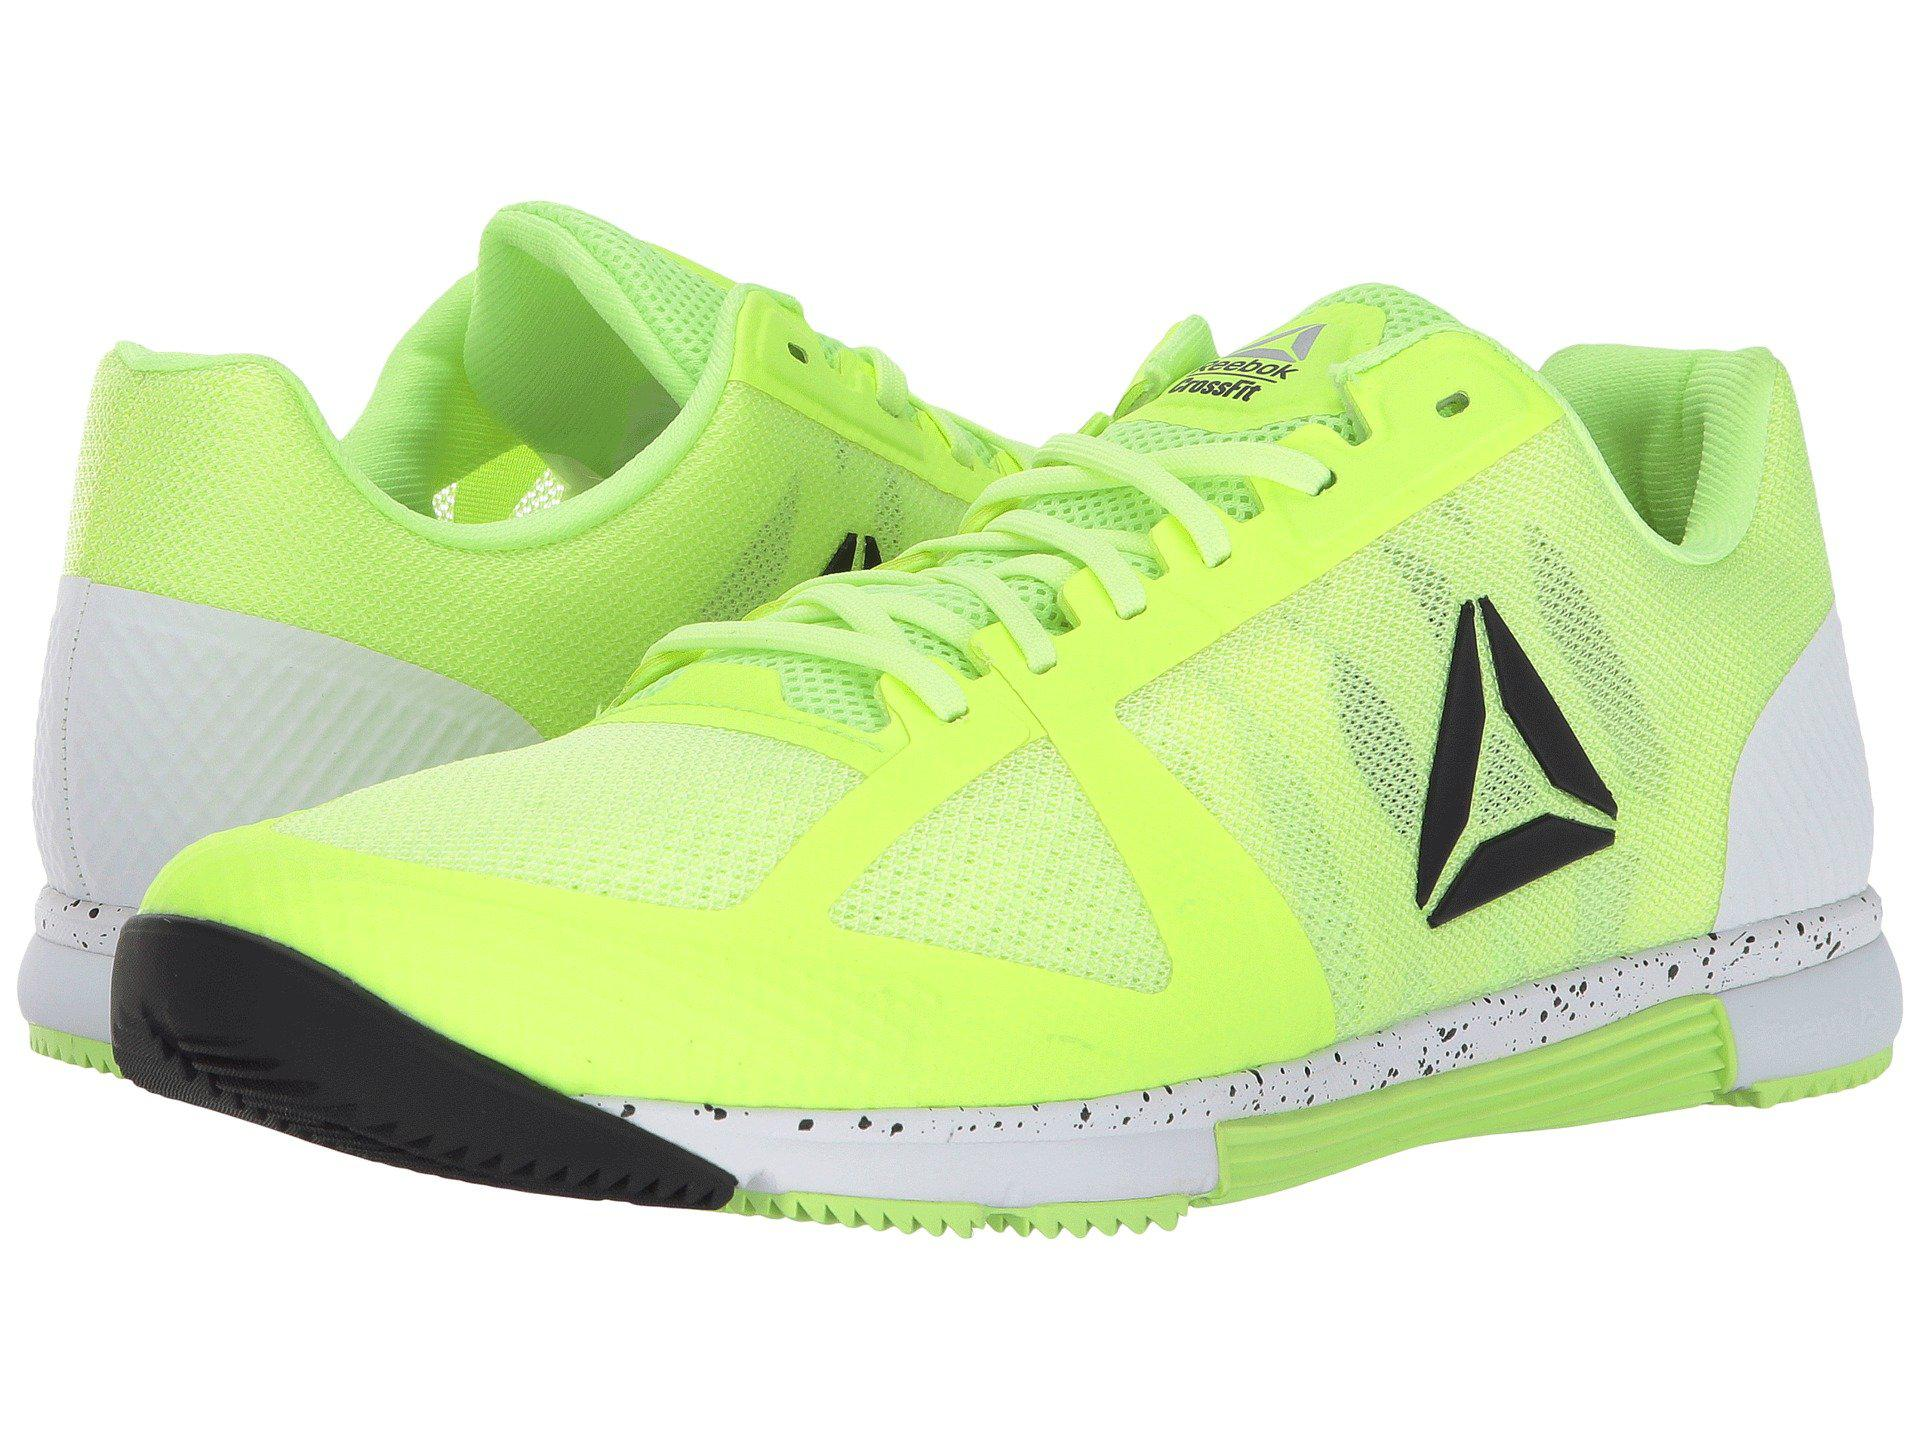 cac03bf6aeb Lyst - Reebok   s R Crossfit Speed Tr 2.0 Gymnastics Shoes in Green